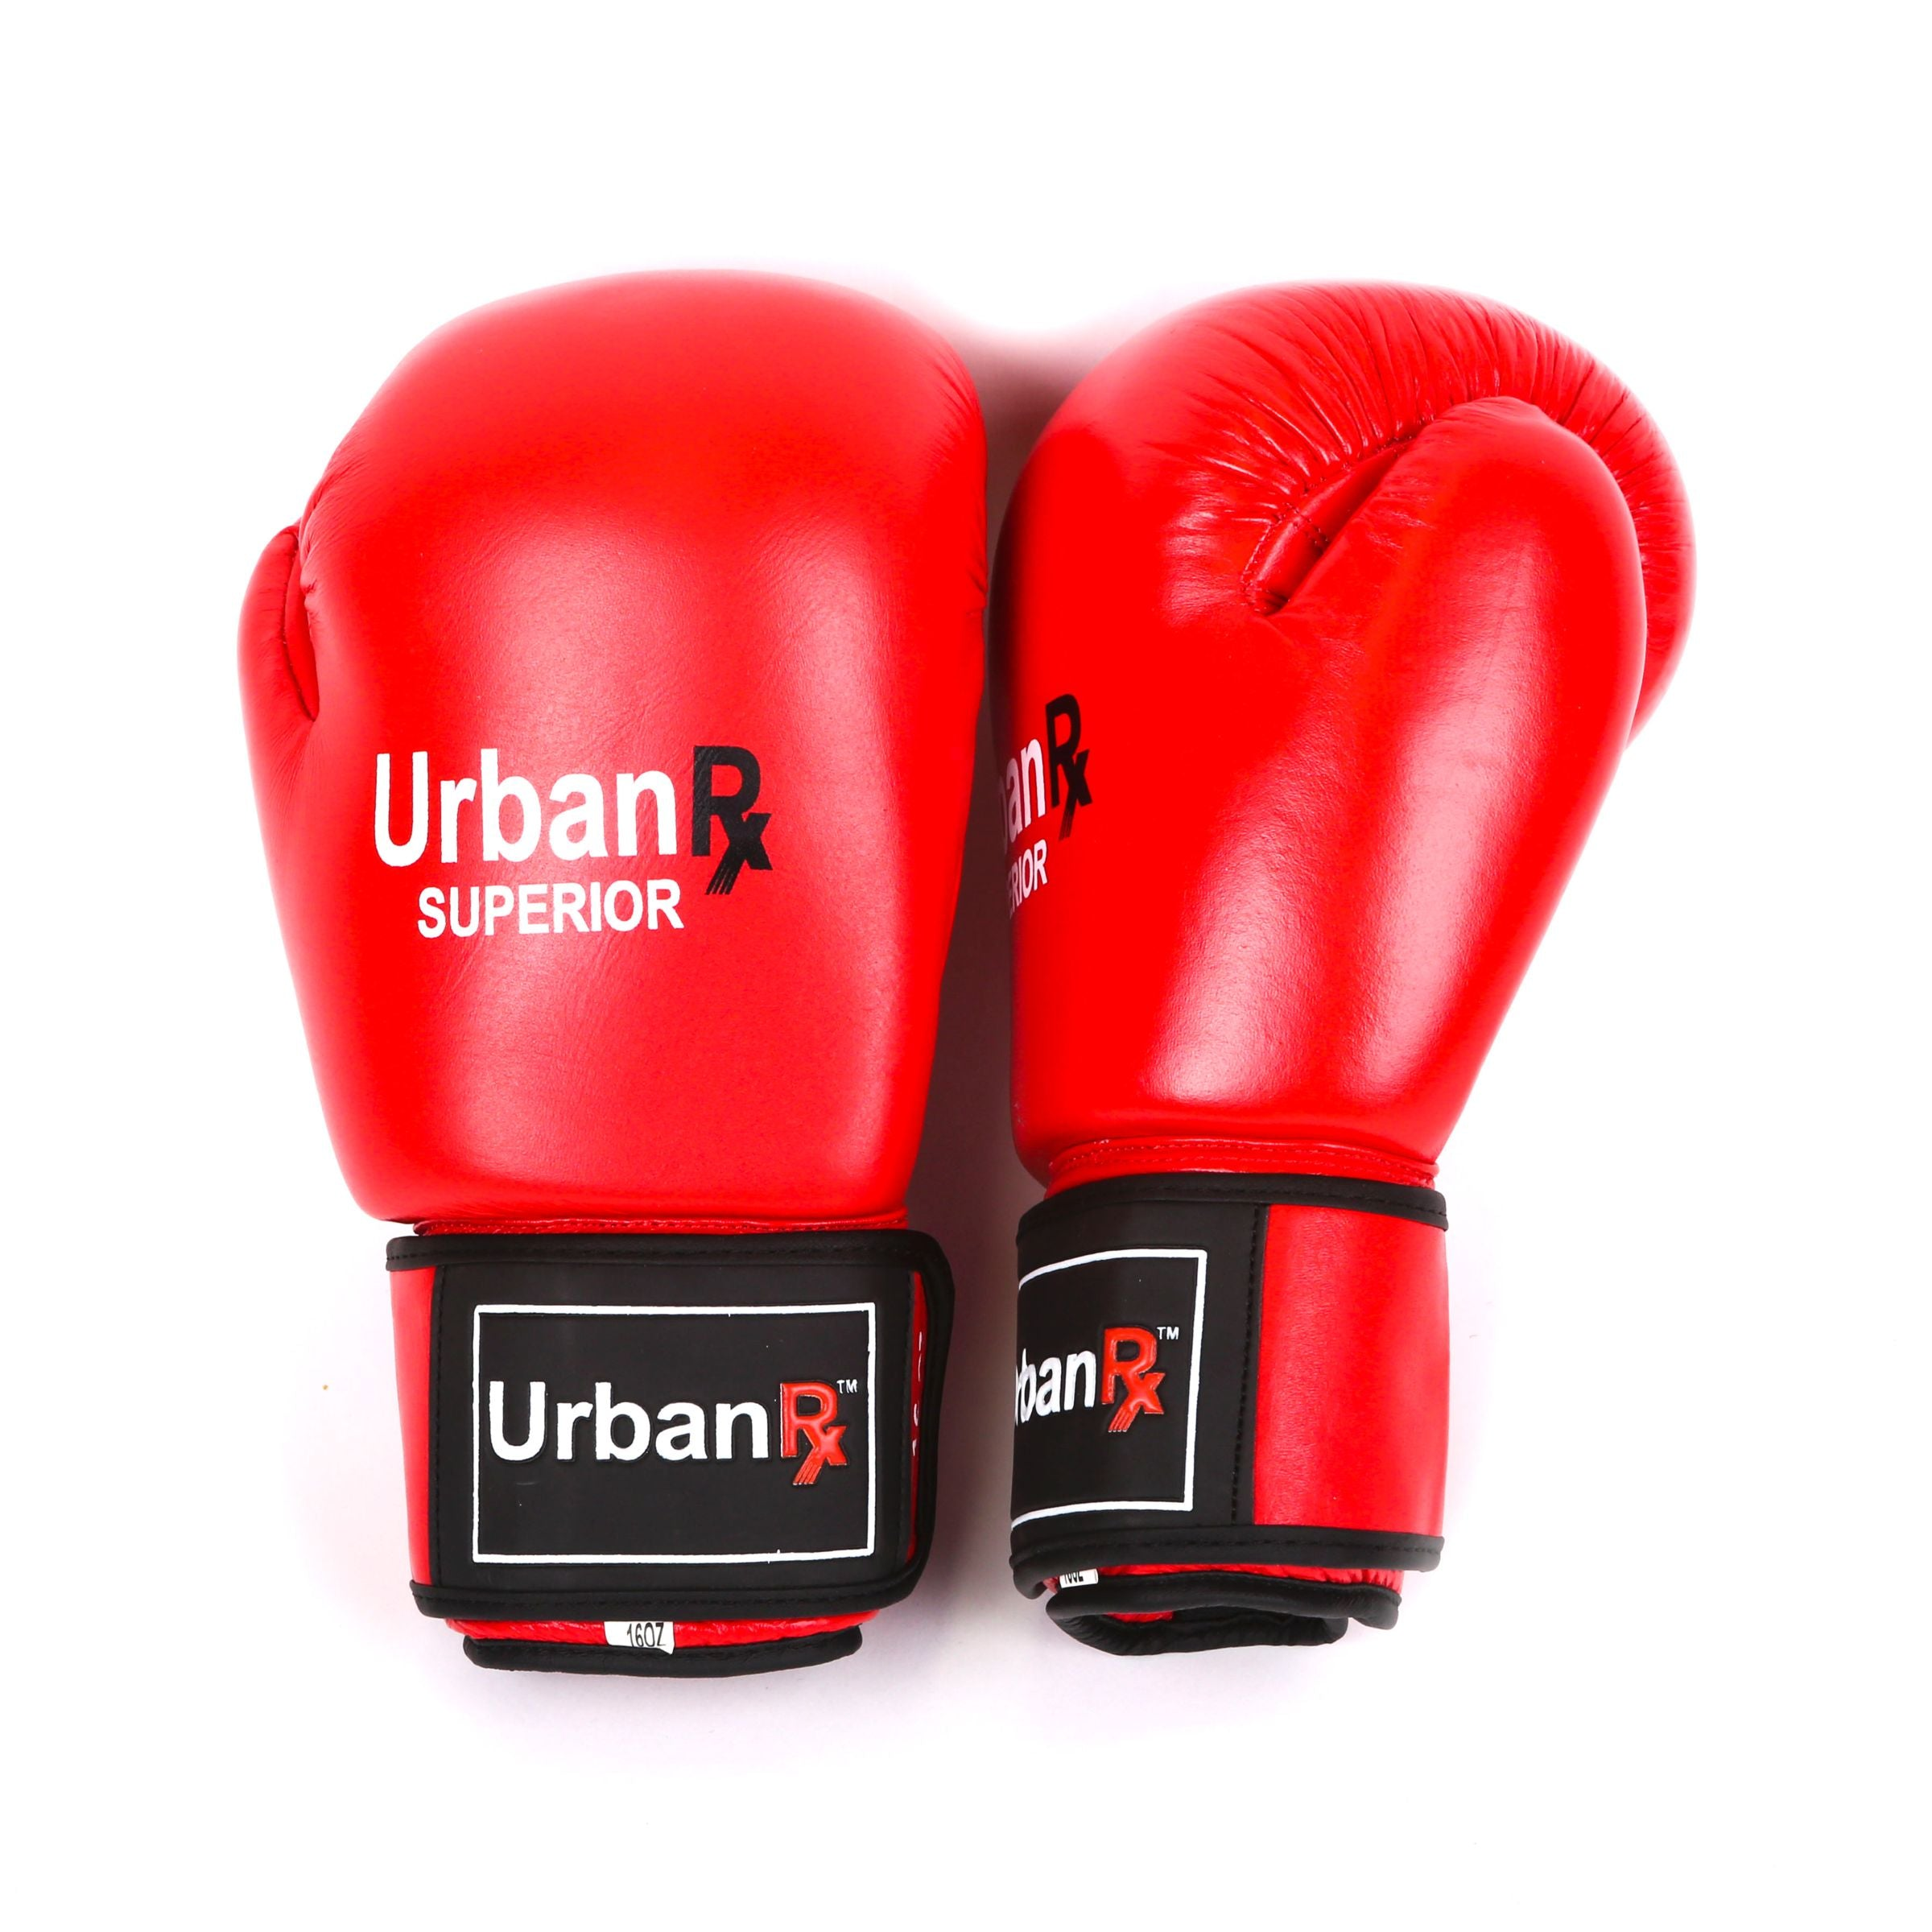 Urban Red Superior Boxing Gloves